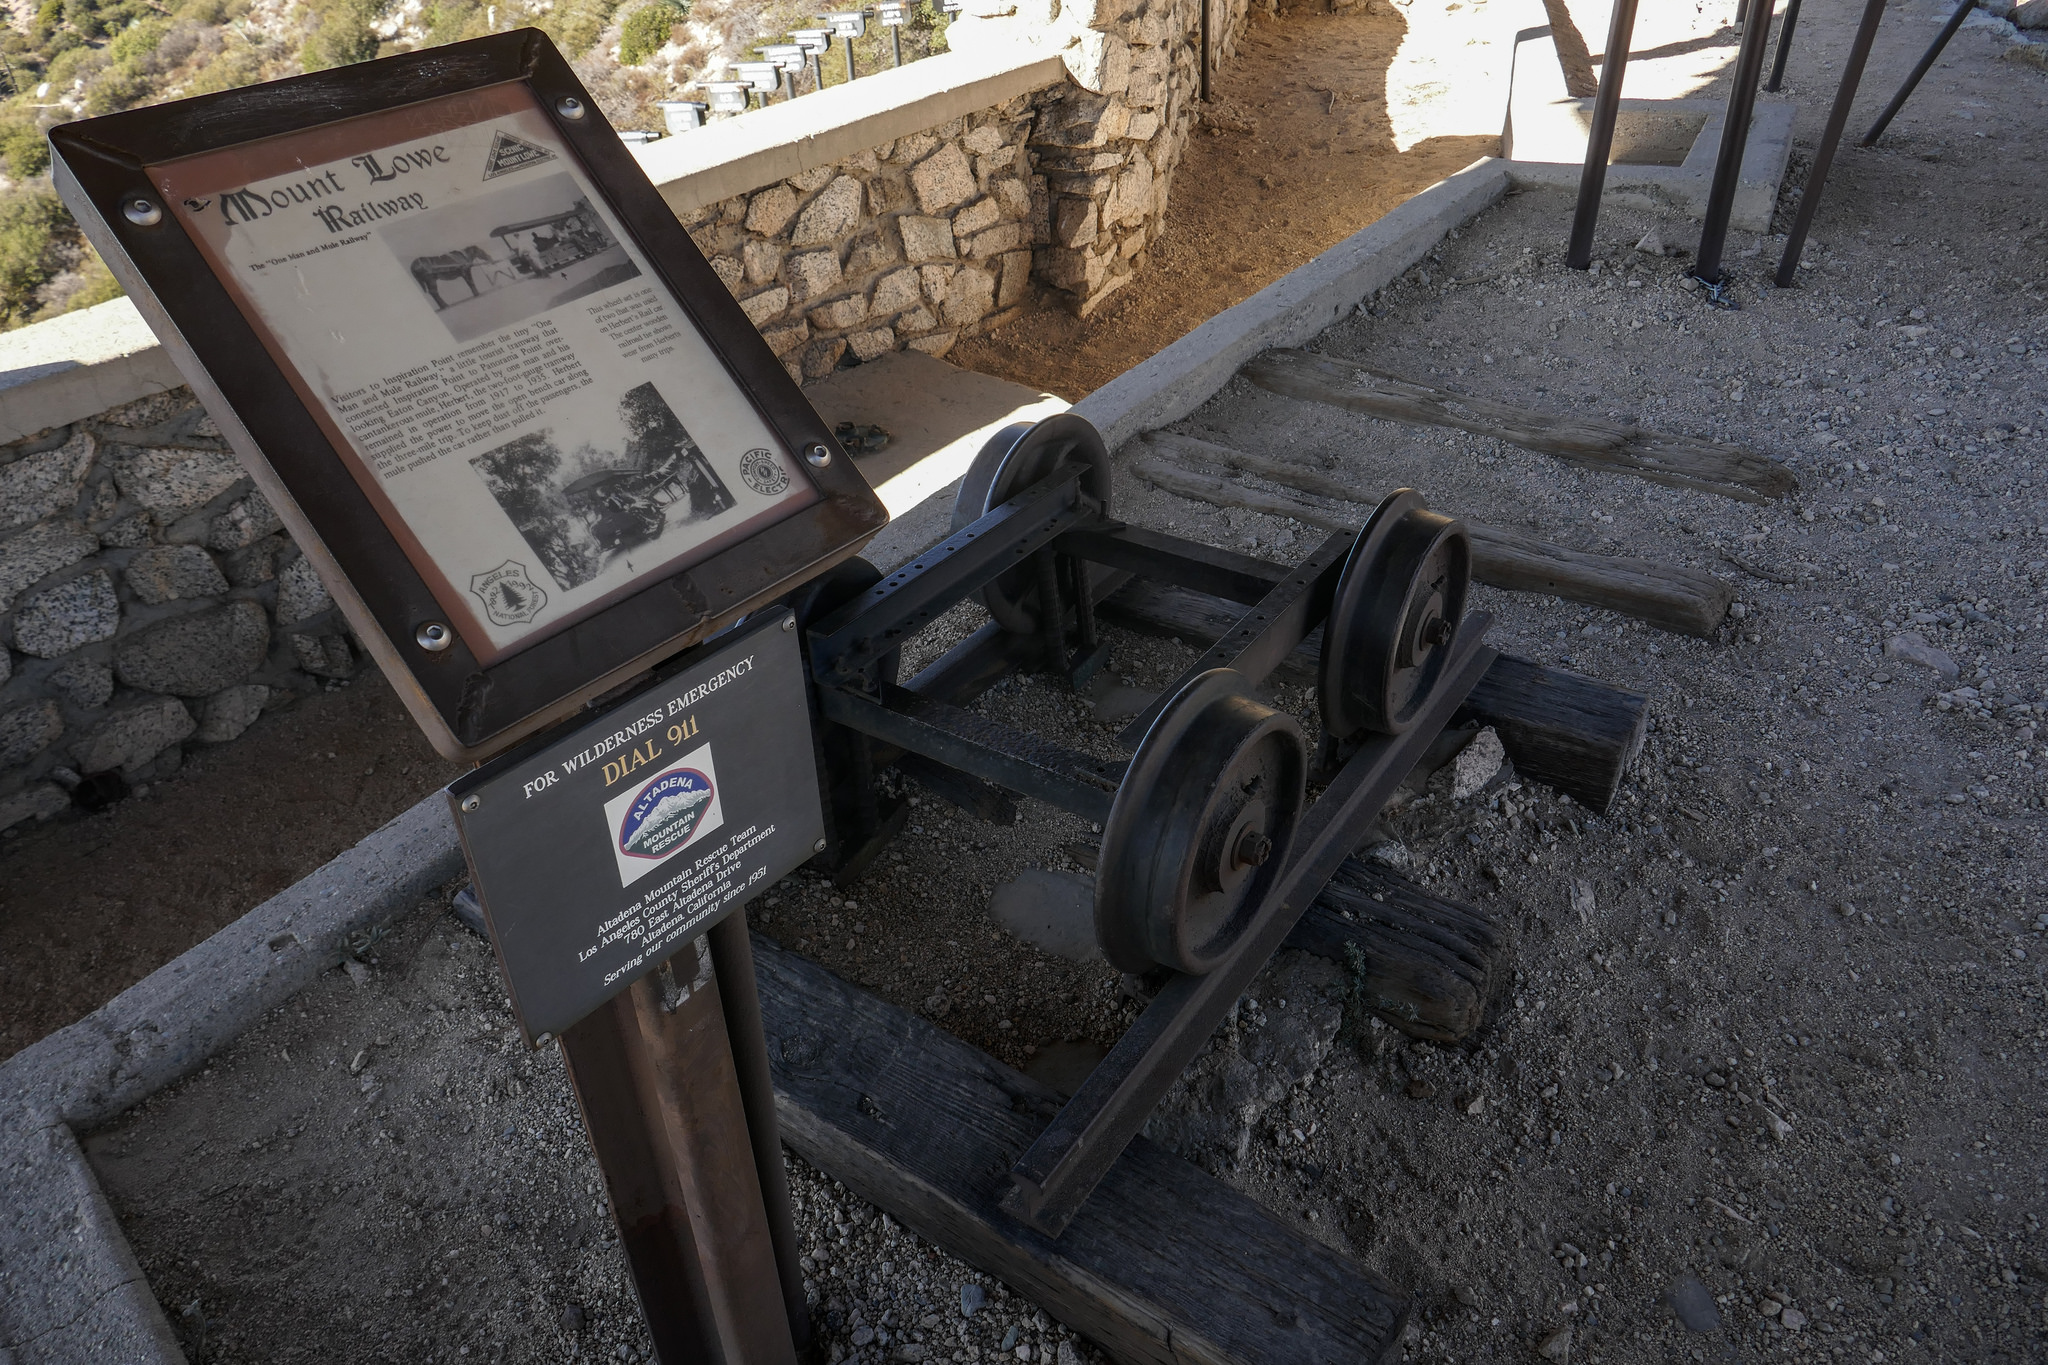 A mule named Herbert used to push people up to Inspiration Point from Ye Alpine Tavern to enjoy the views. There is a plaque here with his photo.